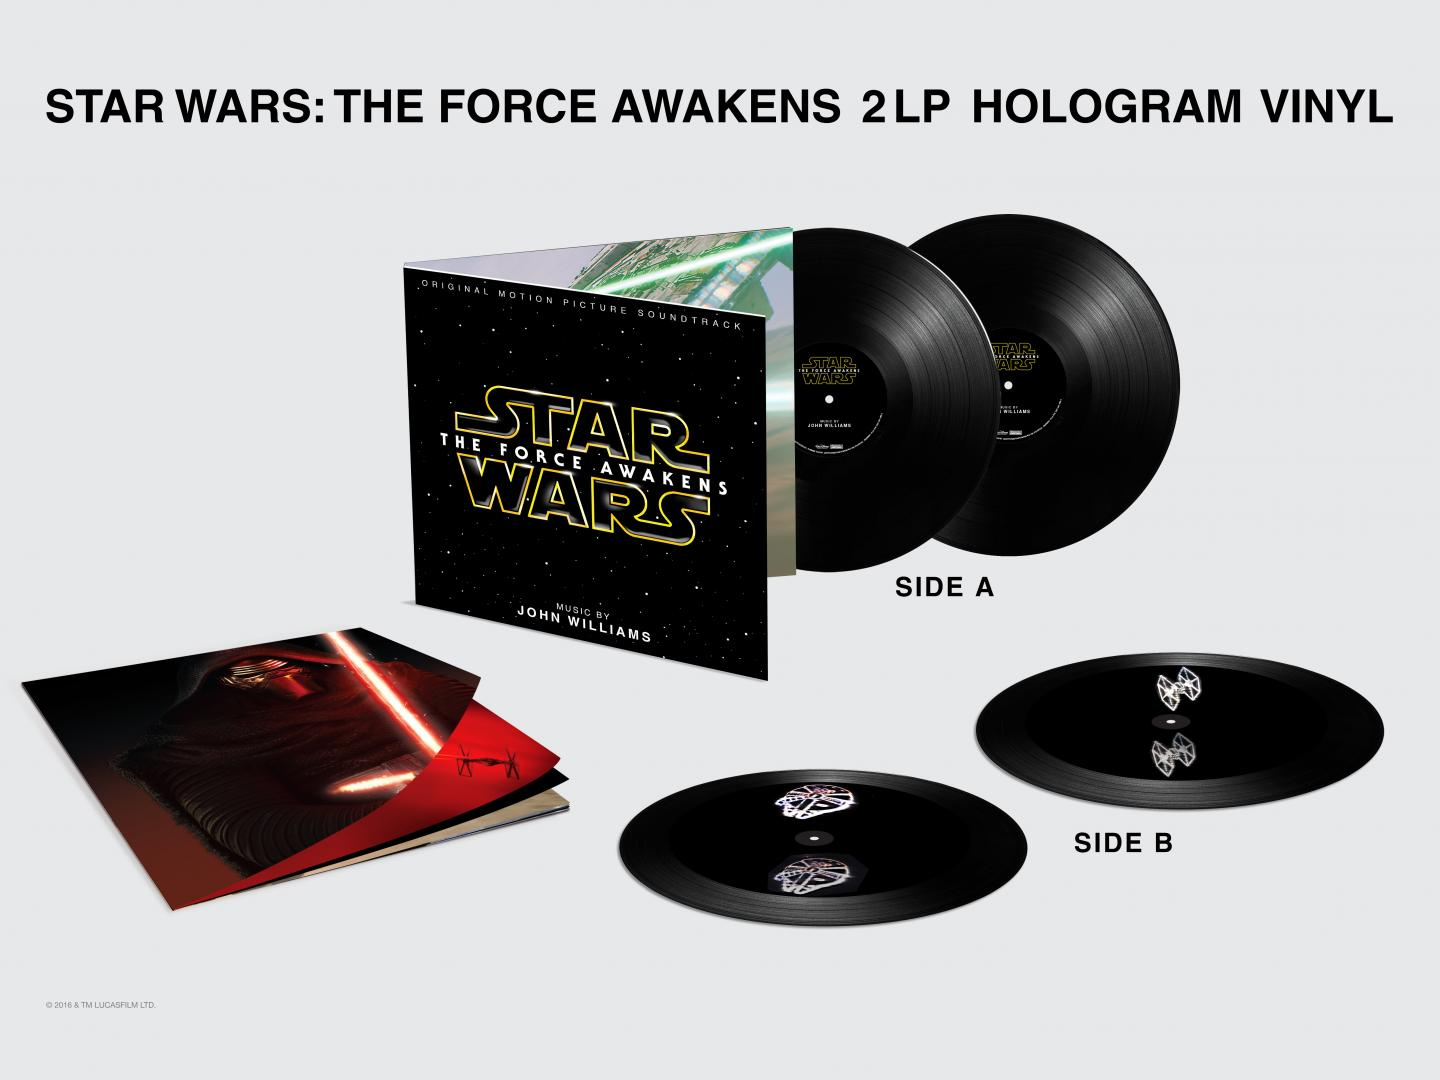 Star Wars The Force Awakens 3D Hologram Vinyl Thumbnail